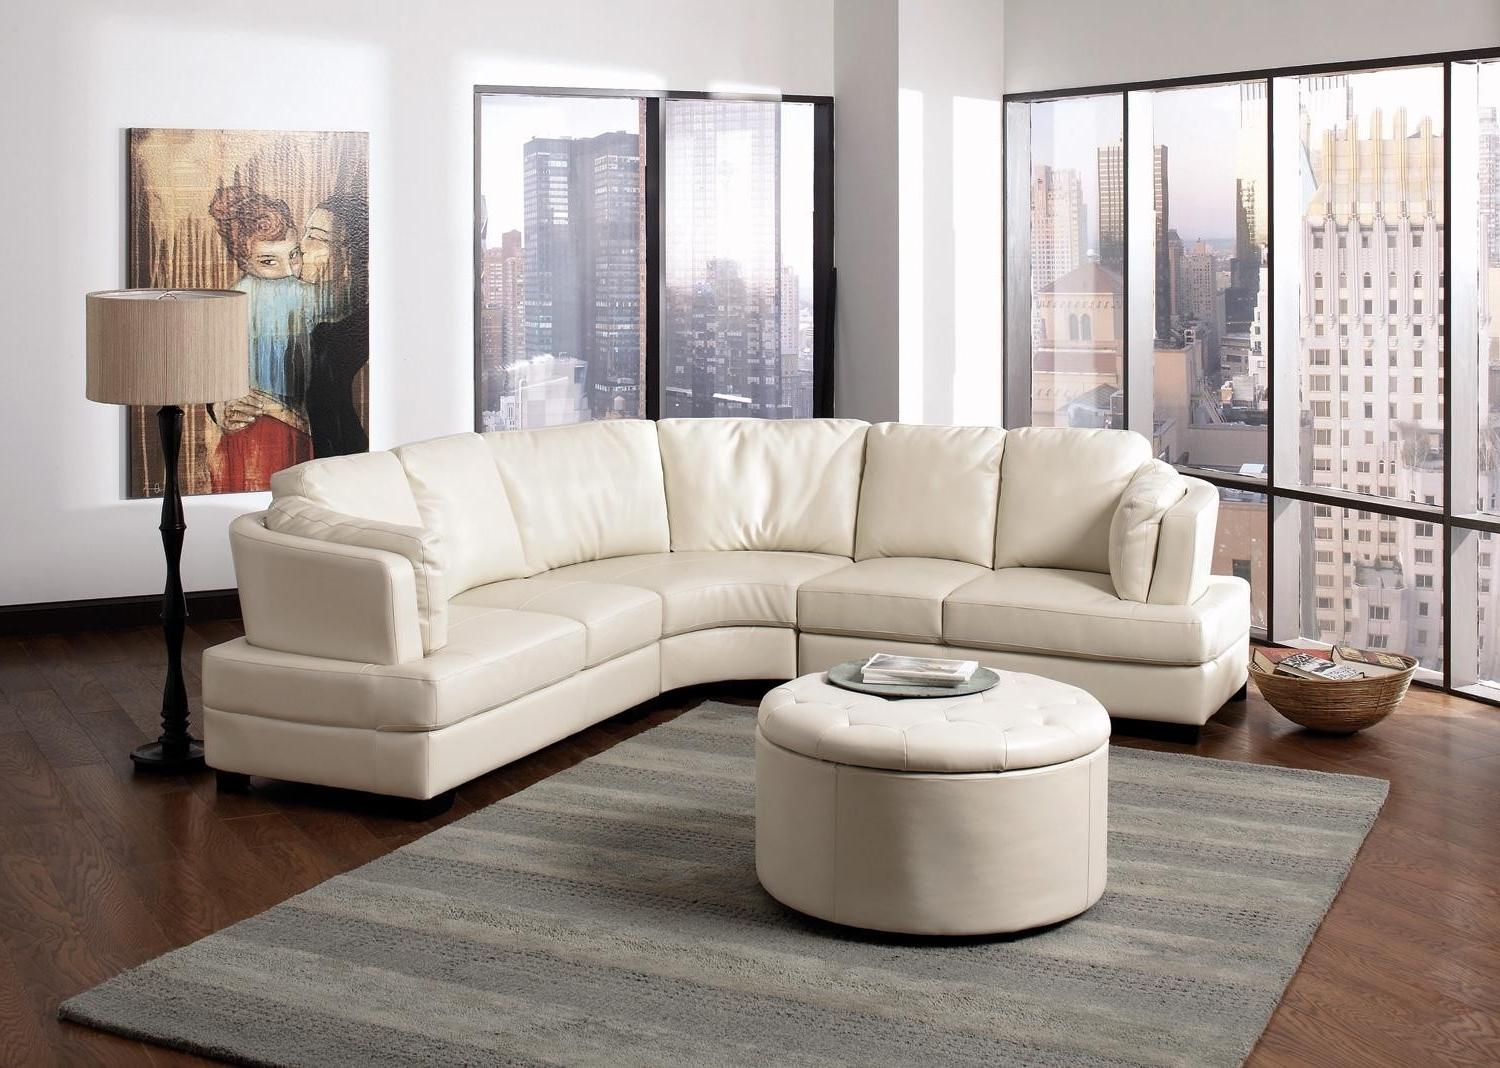 Bedroom: Awesome U Shaped Sectional Canada U Shaped Sectionals In Best And Newest Canada Sectional Sofas For Small Spaces (View 2 of 15)